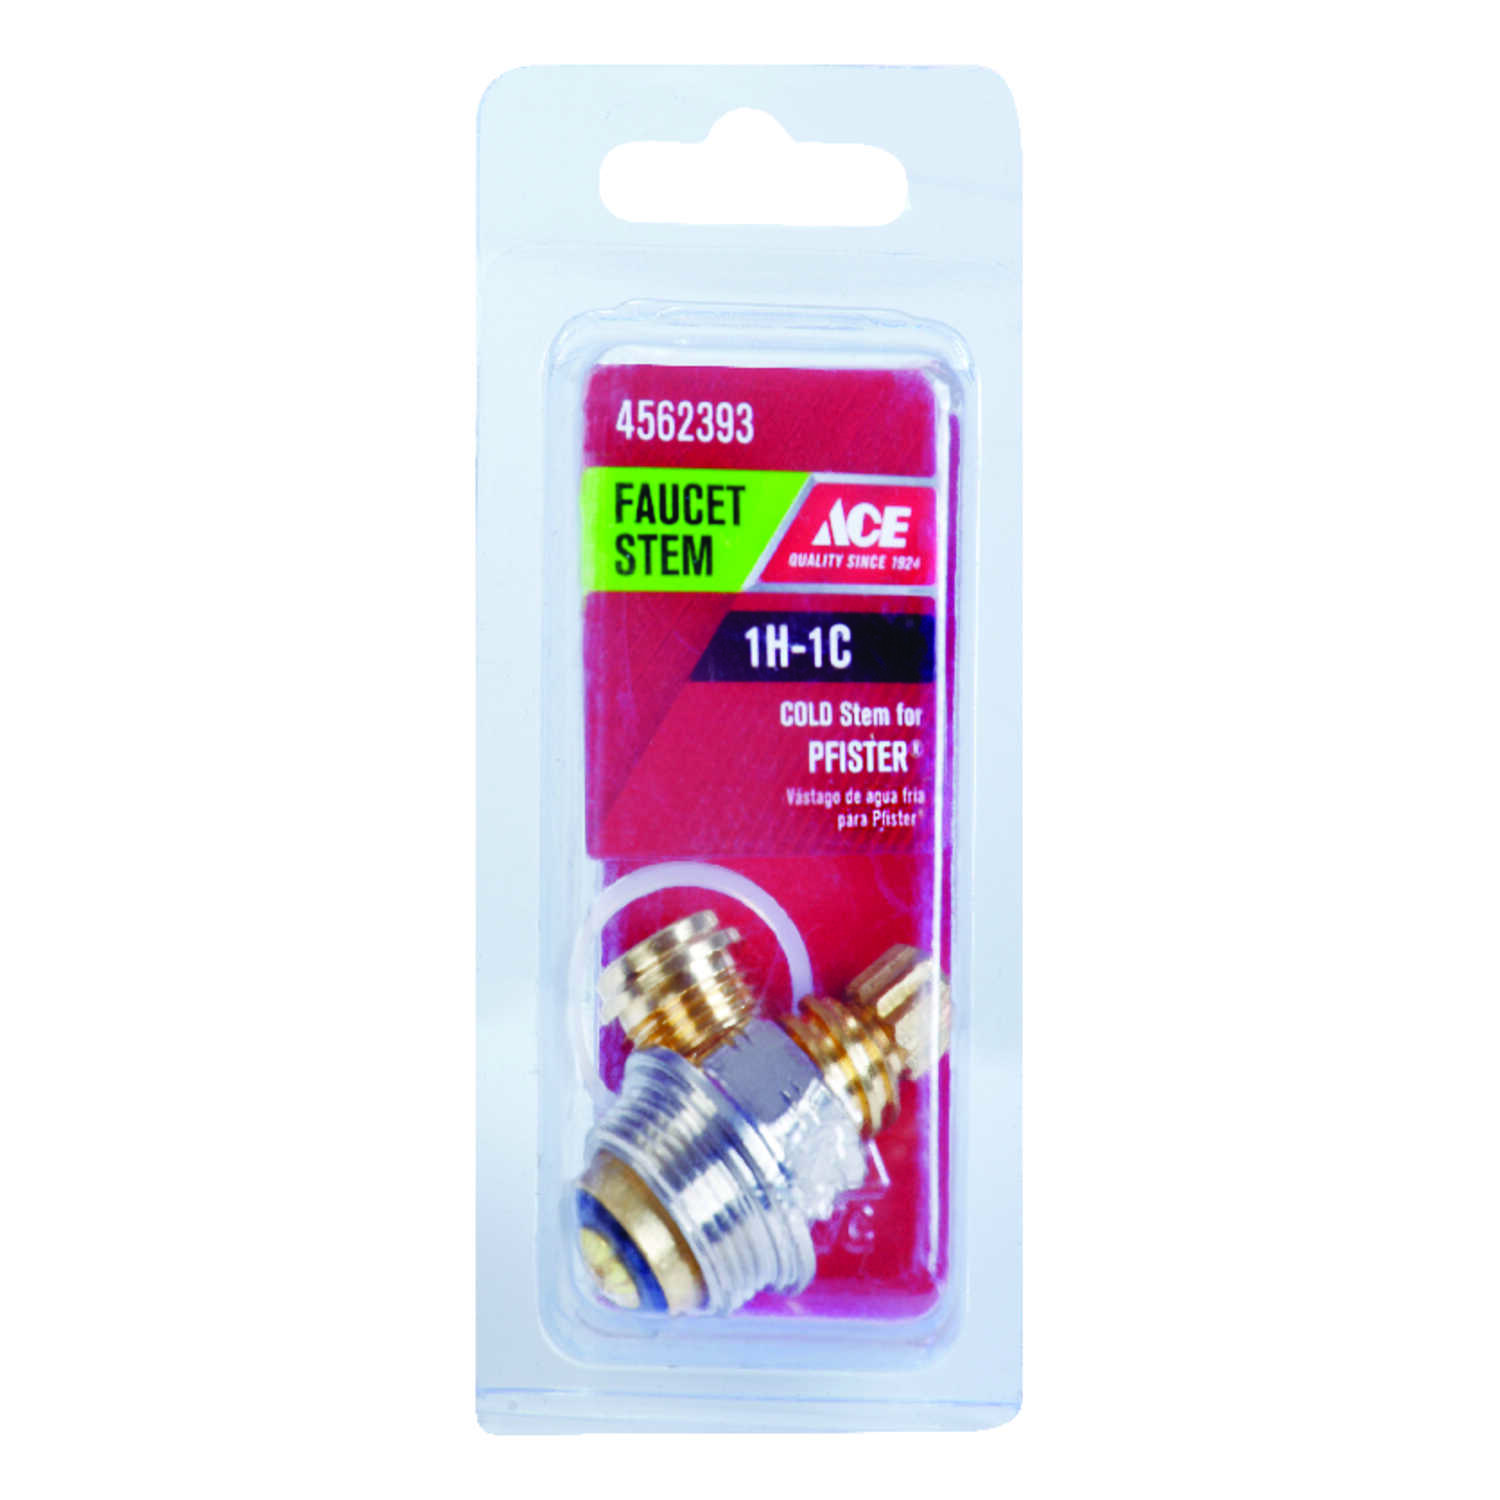 Ace  Cold  1H-1C  Faucet Stem  For Price Pfister